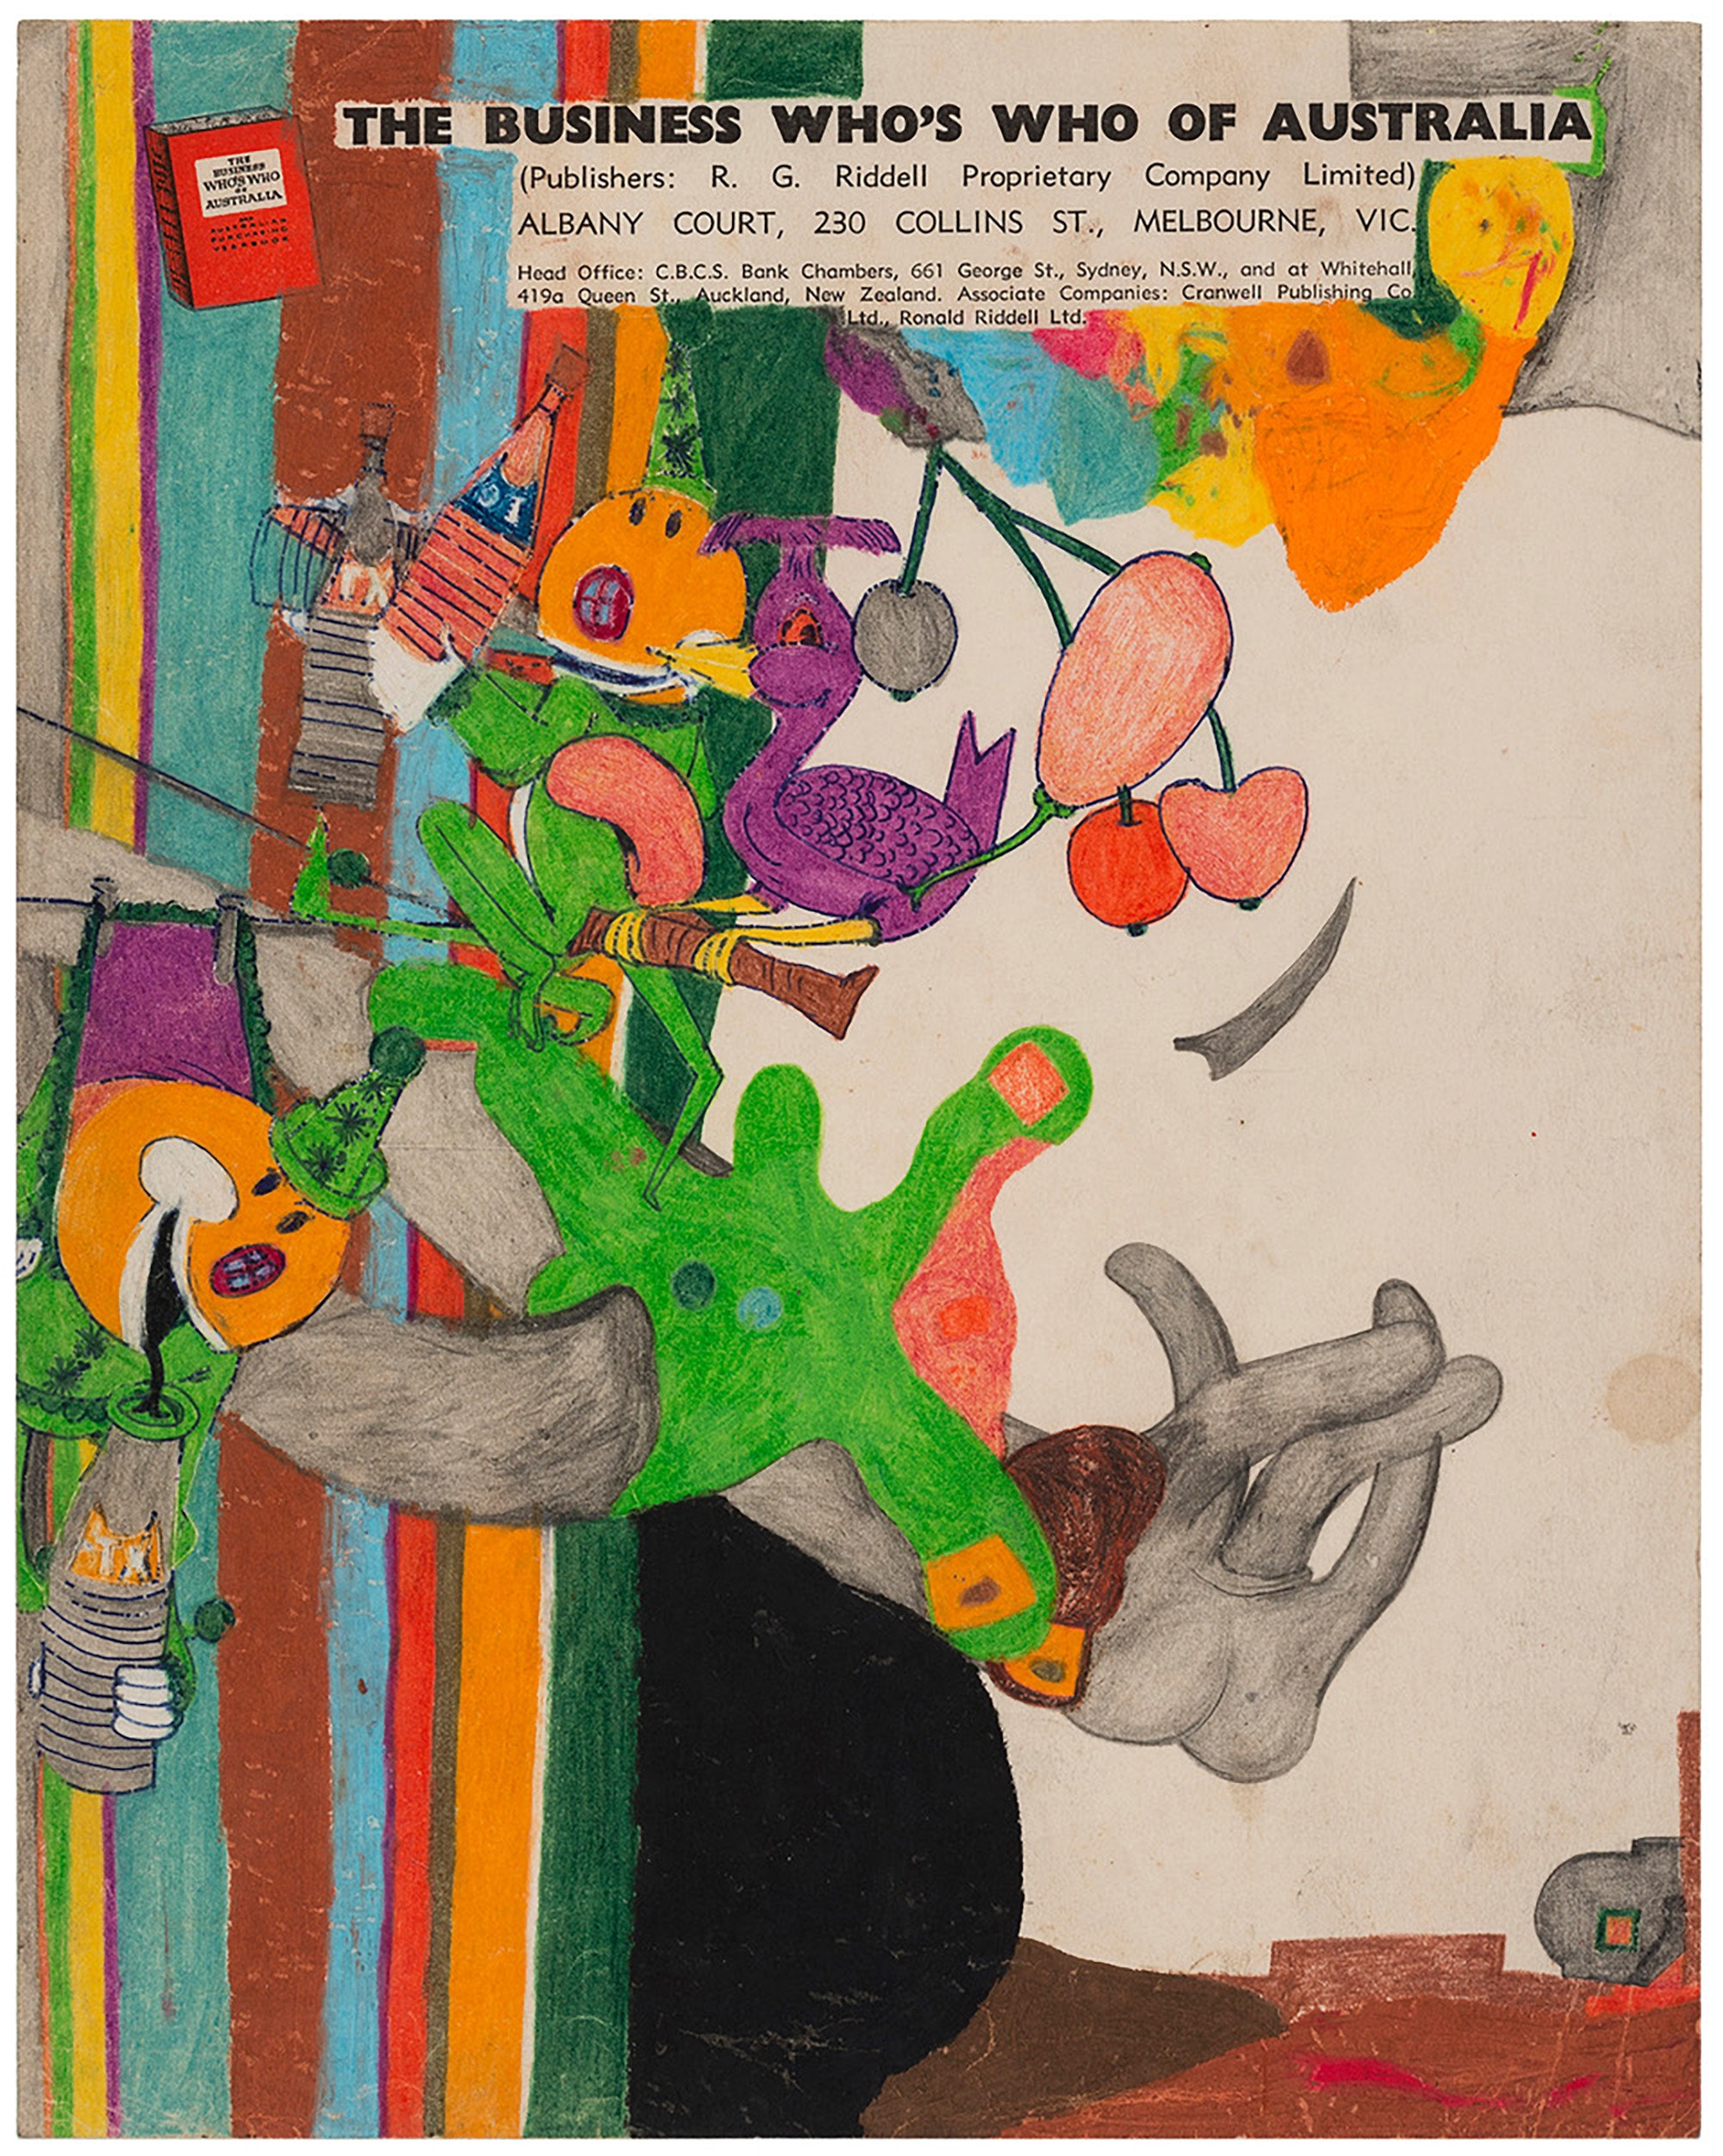 Susan Te Kahurangi King, <em>Untitled</em>, ca. 1967–70. Crayon, ink, colored pencil and graphite on paper, 10.25 x 8.25 inches. Courtesy Andrew Edlin Gallery, New York.